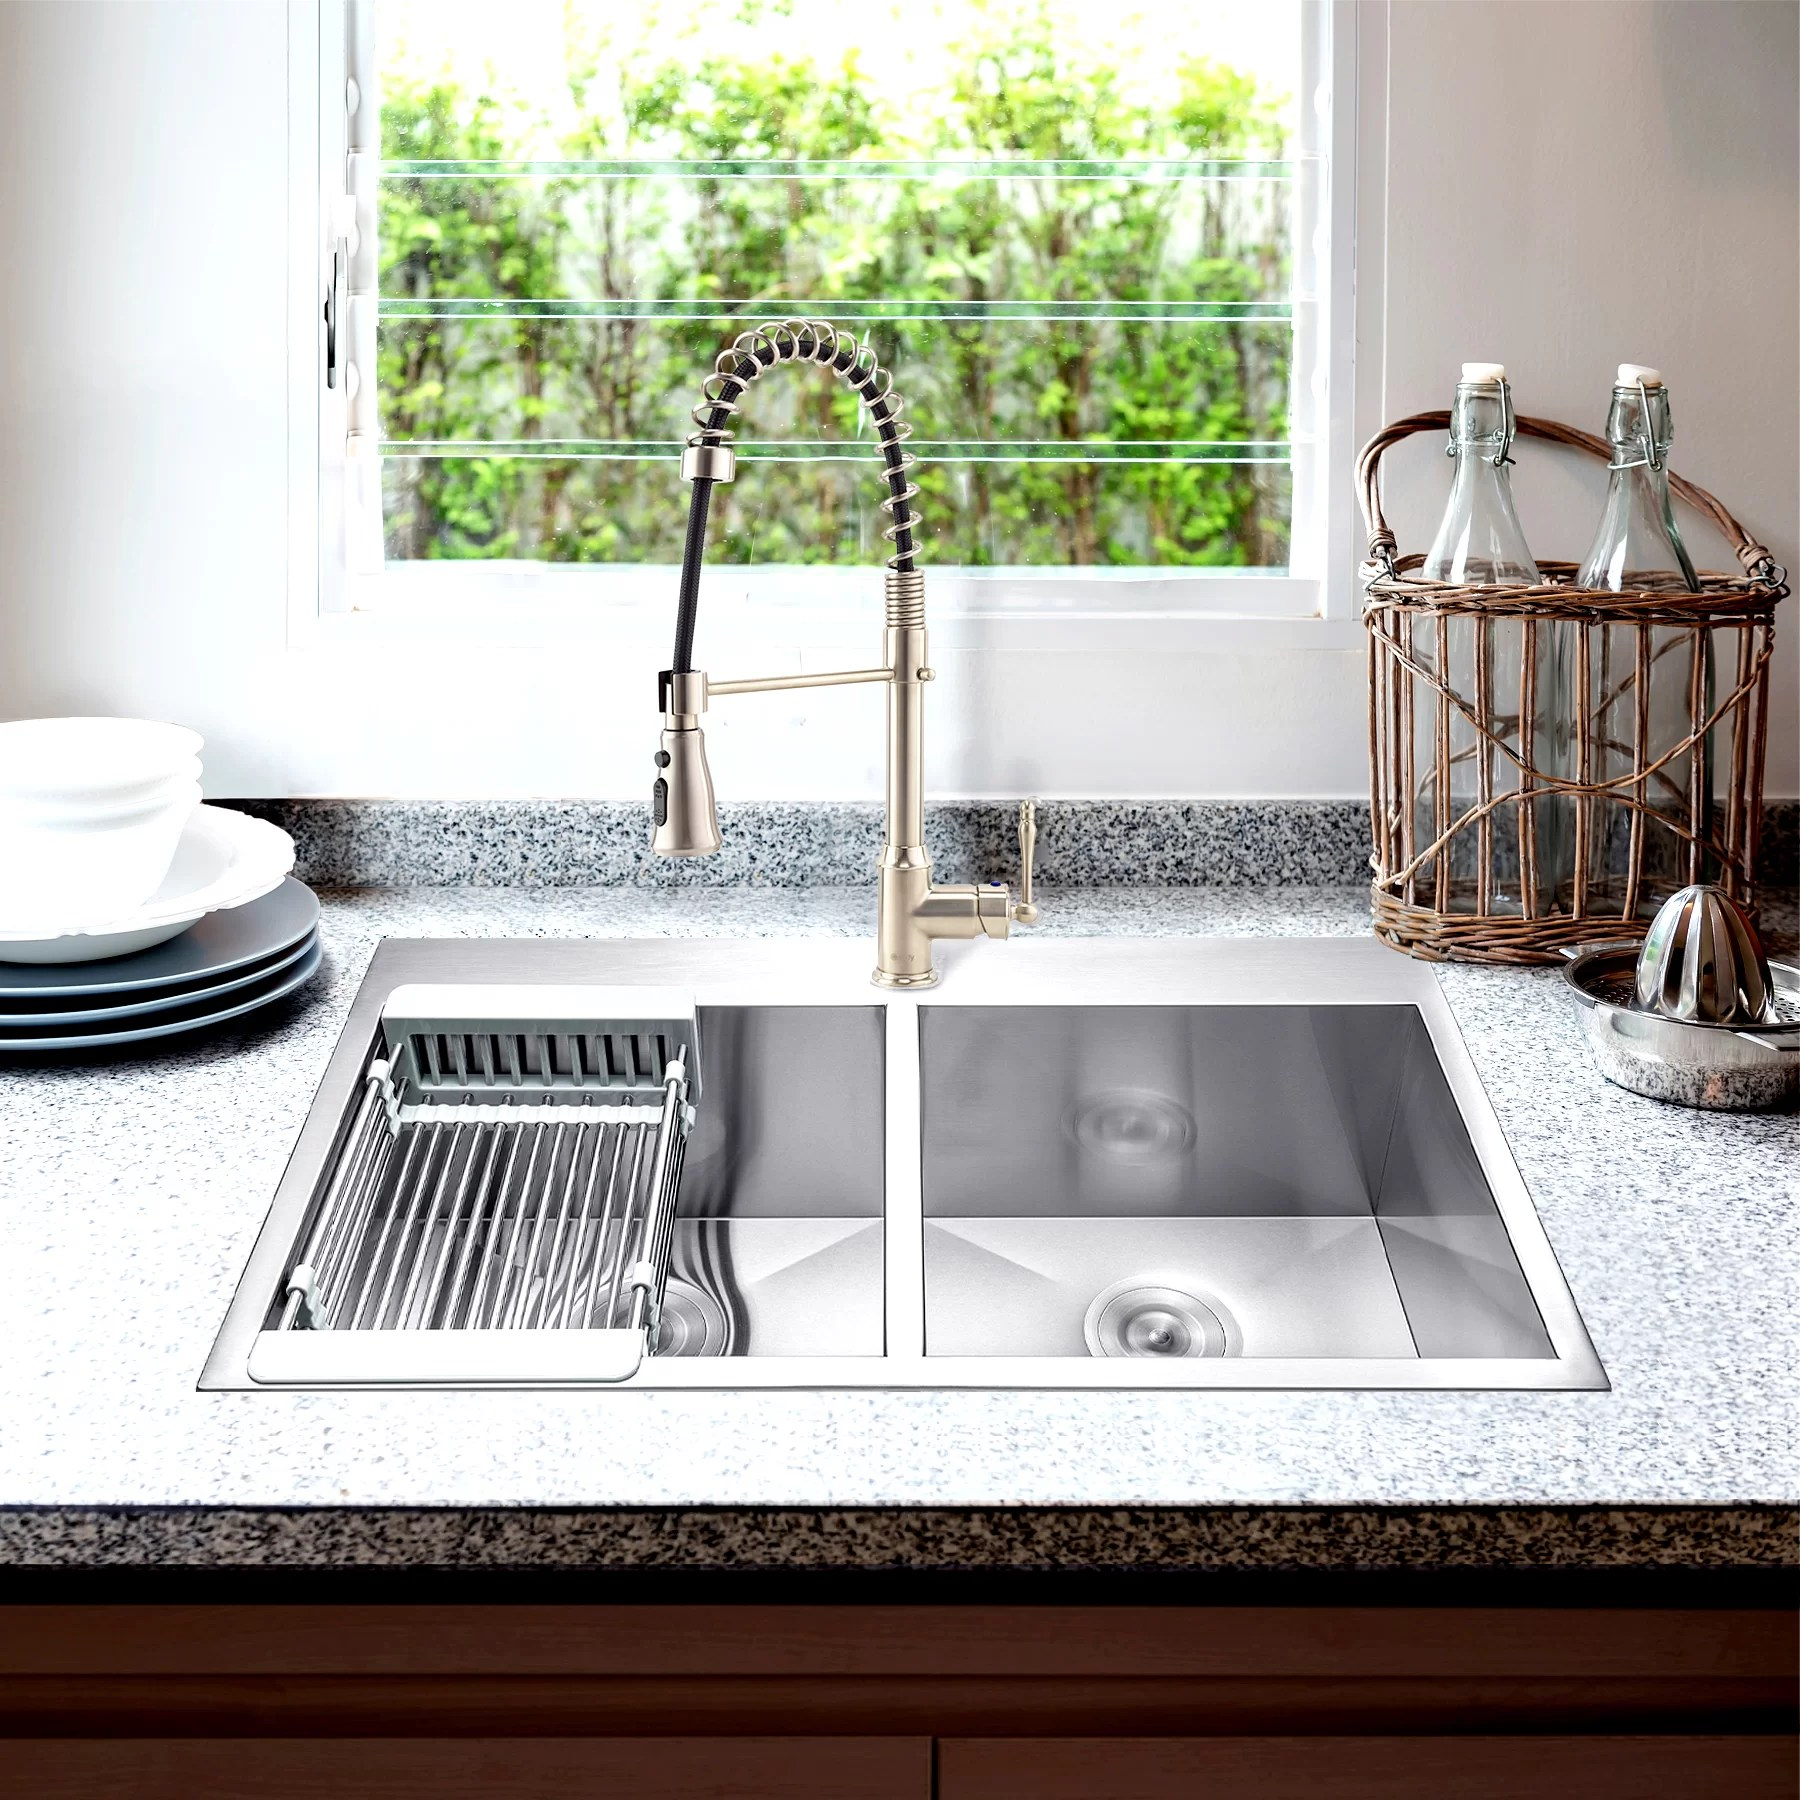 33 l x 22 w double basin undermount kitchen sink with faucet